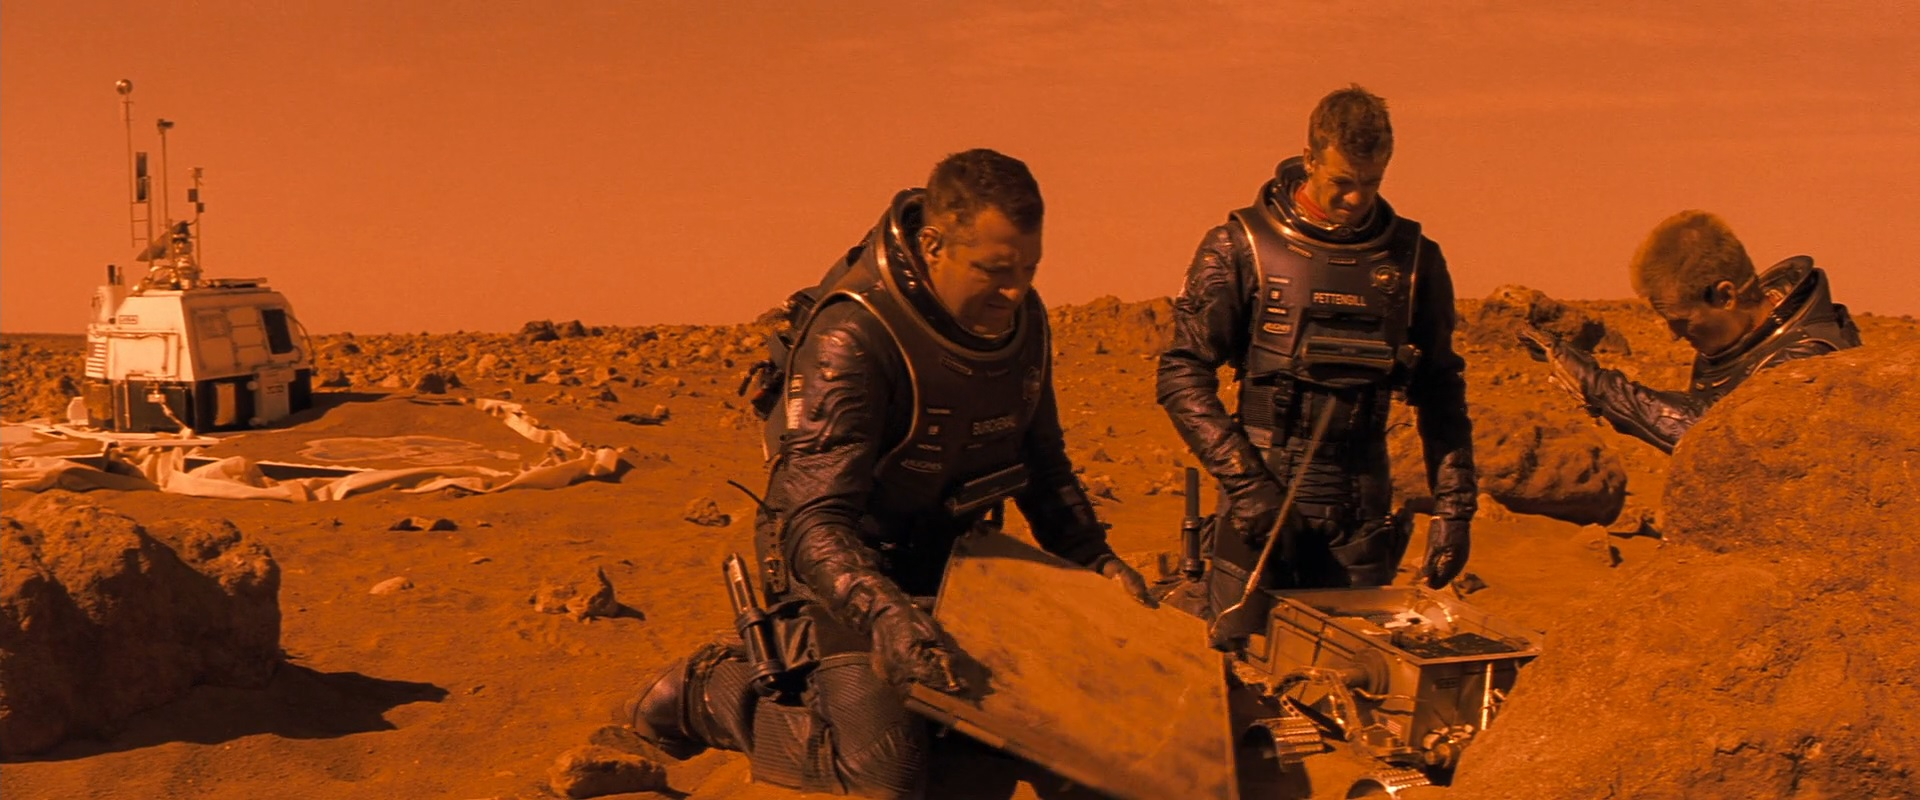 red planet cast - HD1920×800